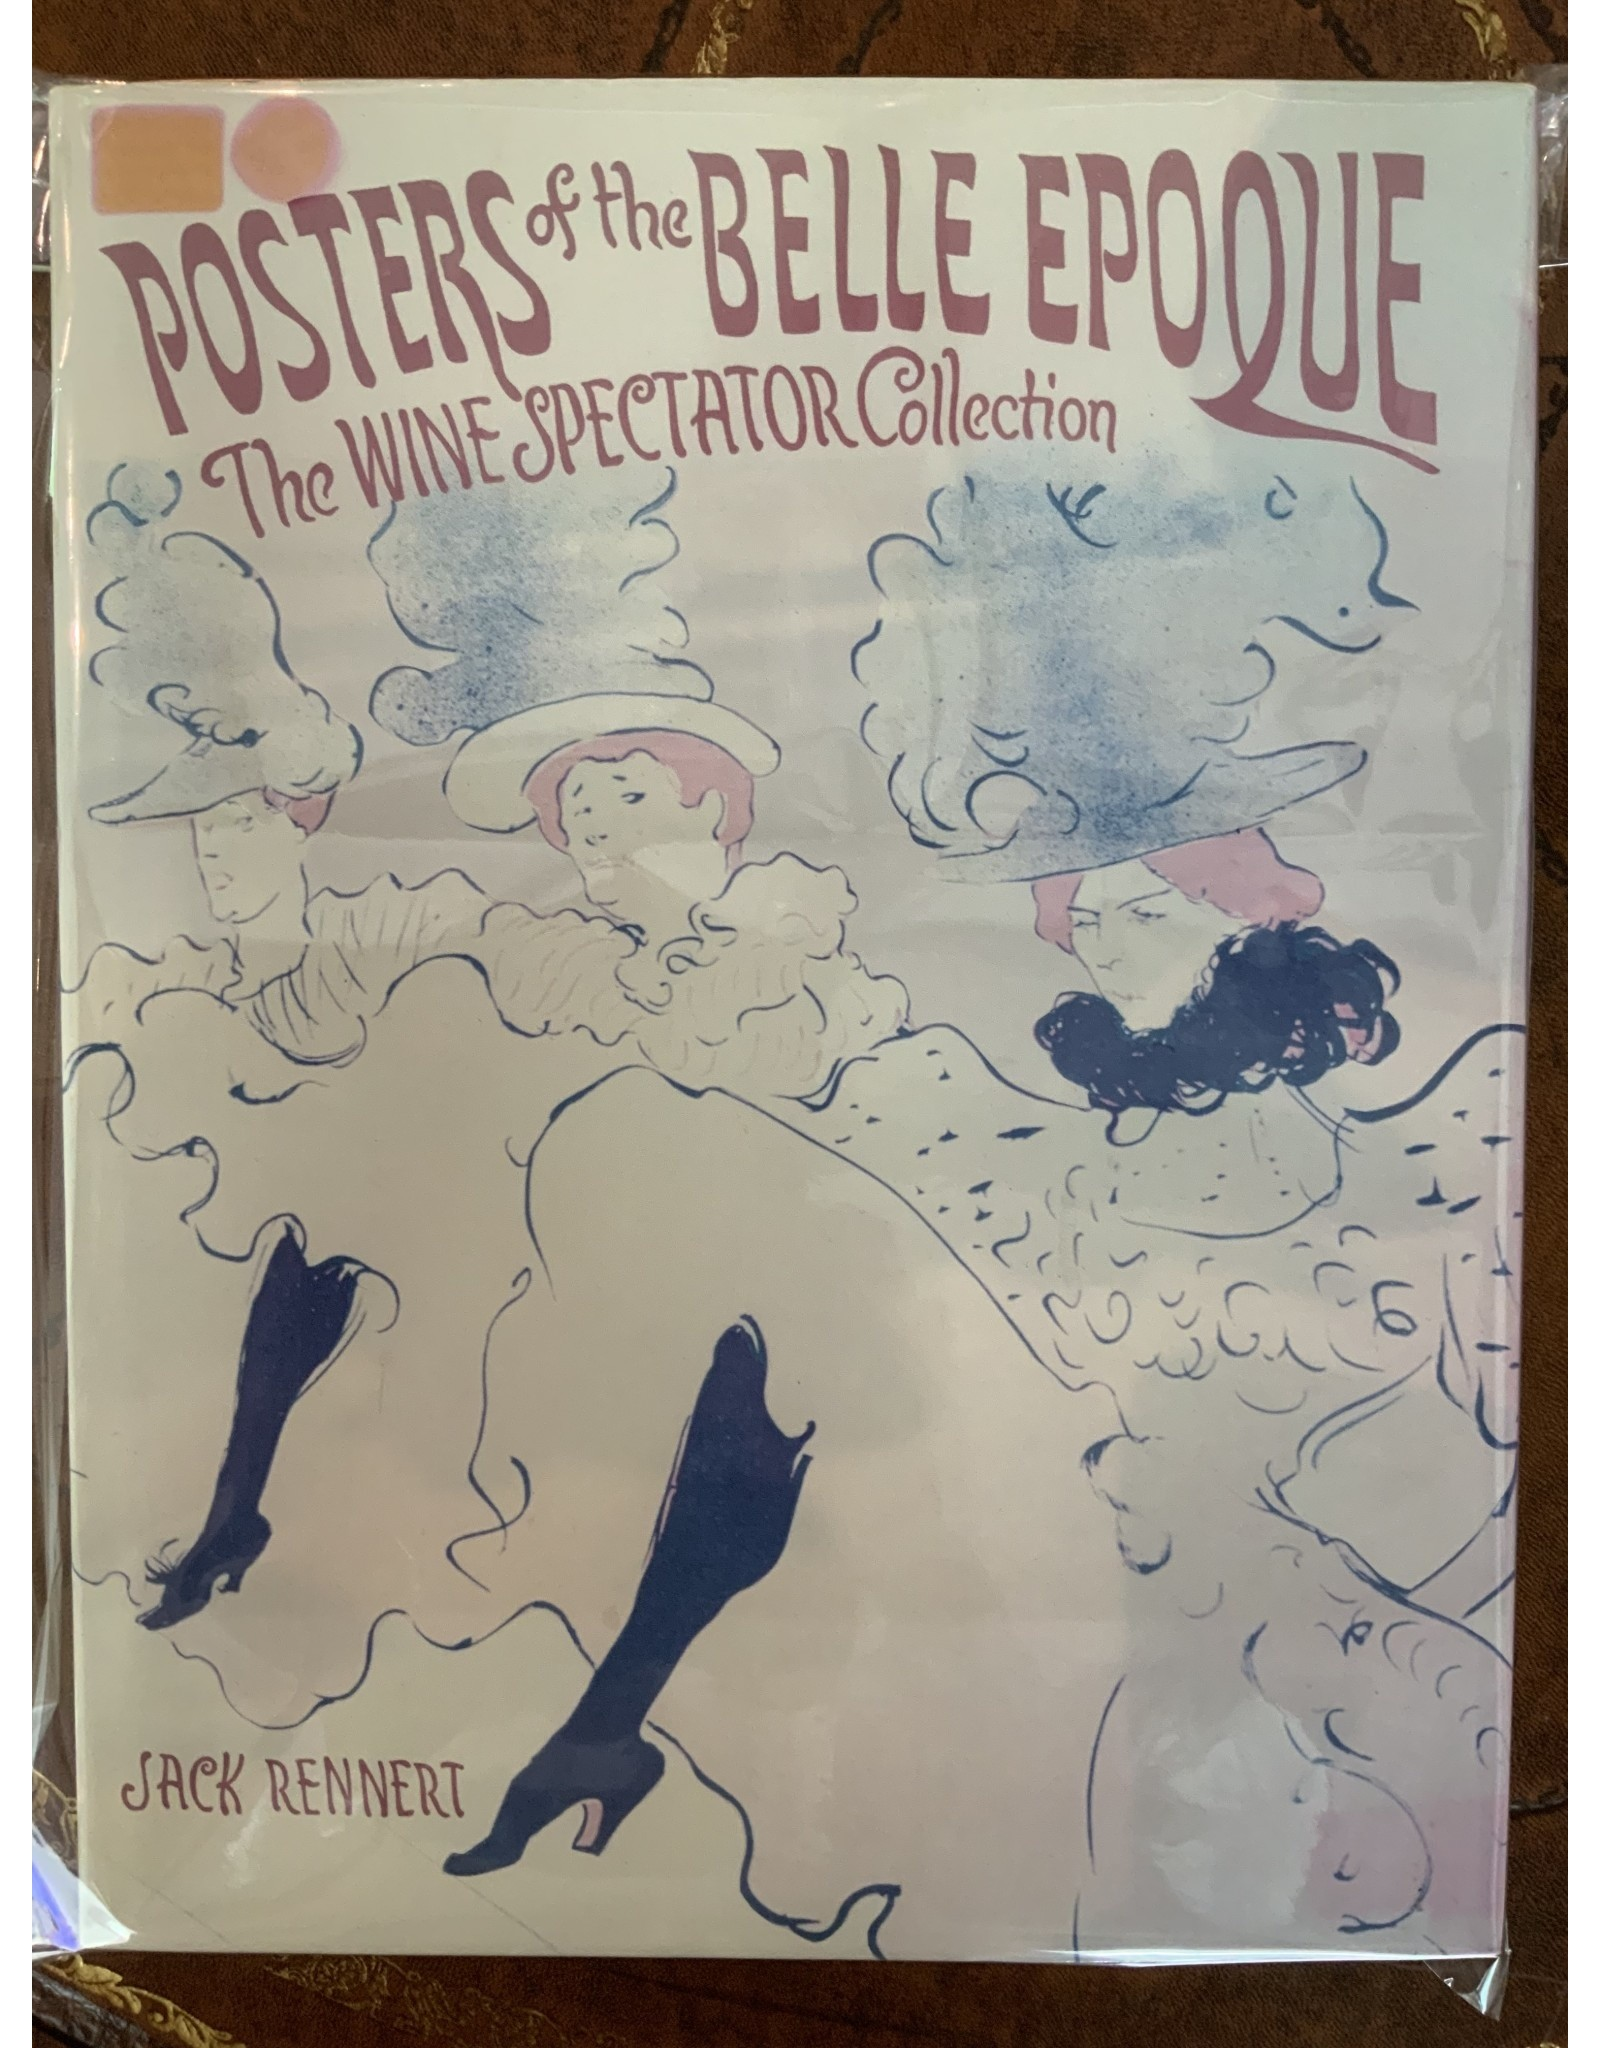 SPV Book of posters of the Belle Époque wine spectator collection